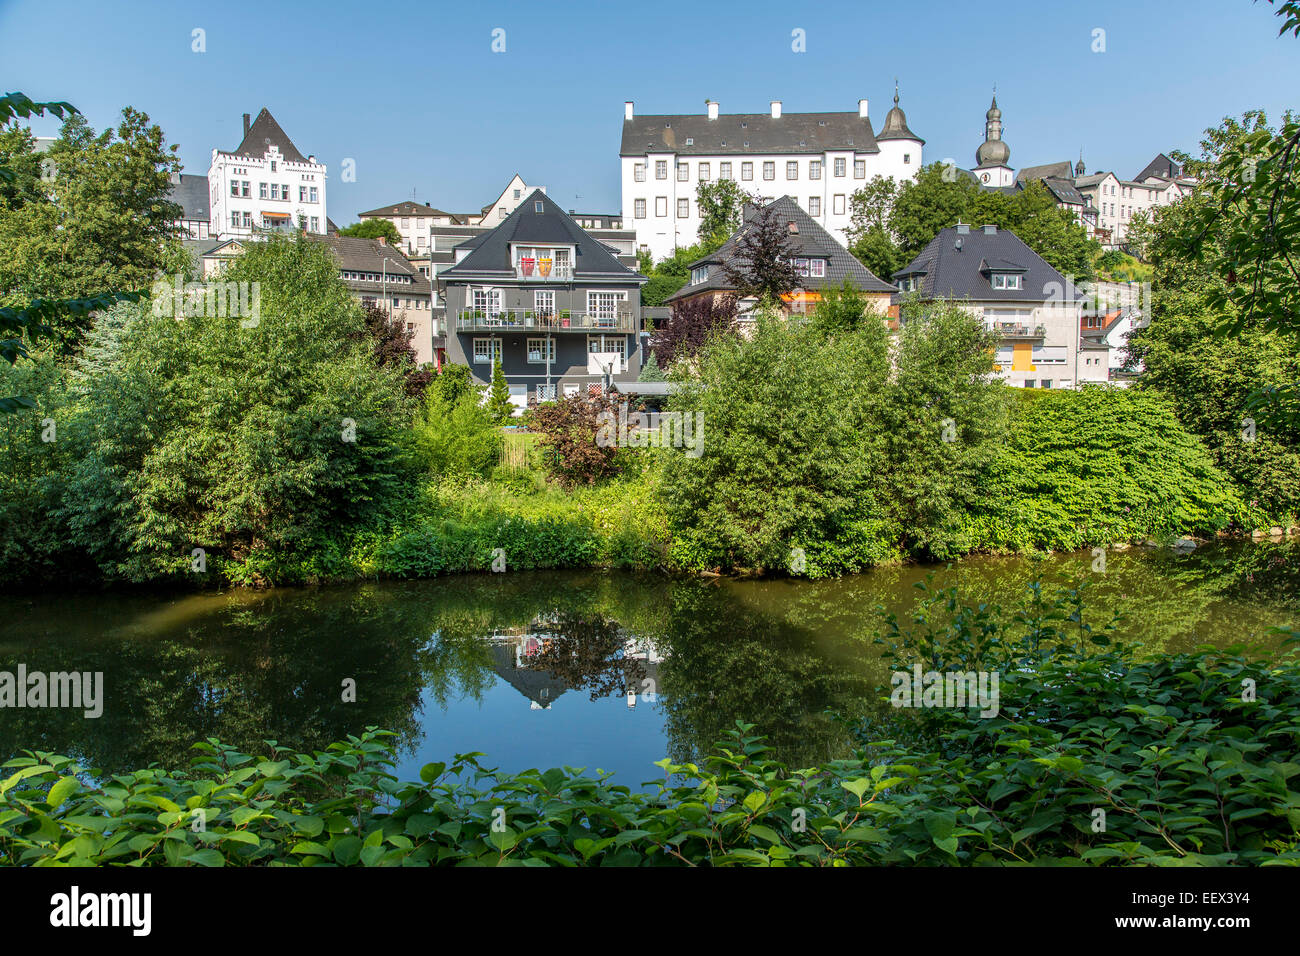 Old town of Arnsberg, a city in the Sauerland region, Germany, river Ruhr Stock Photo